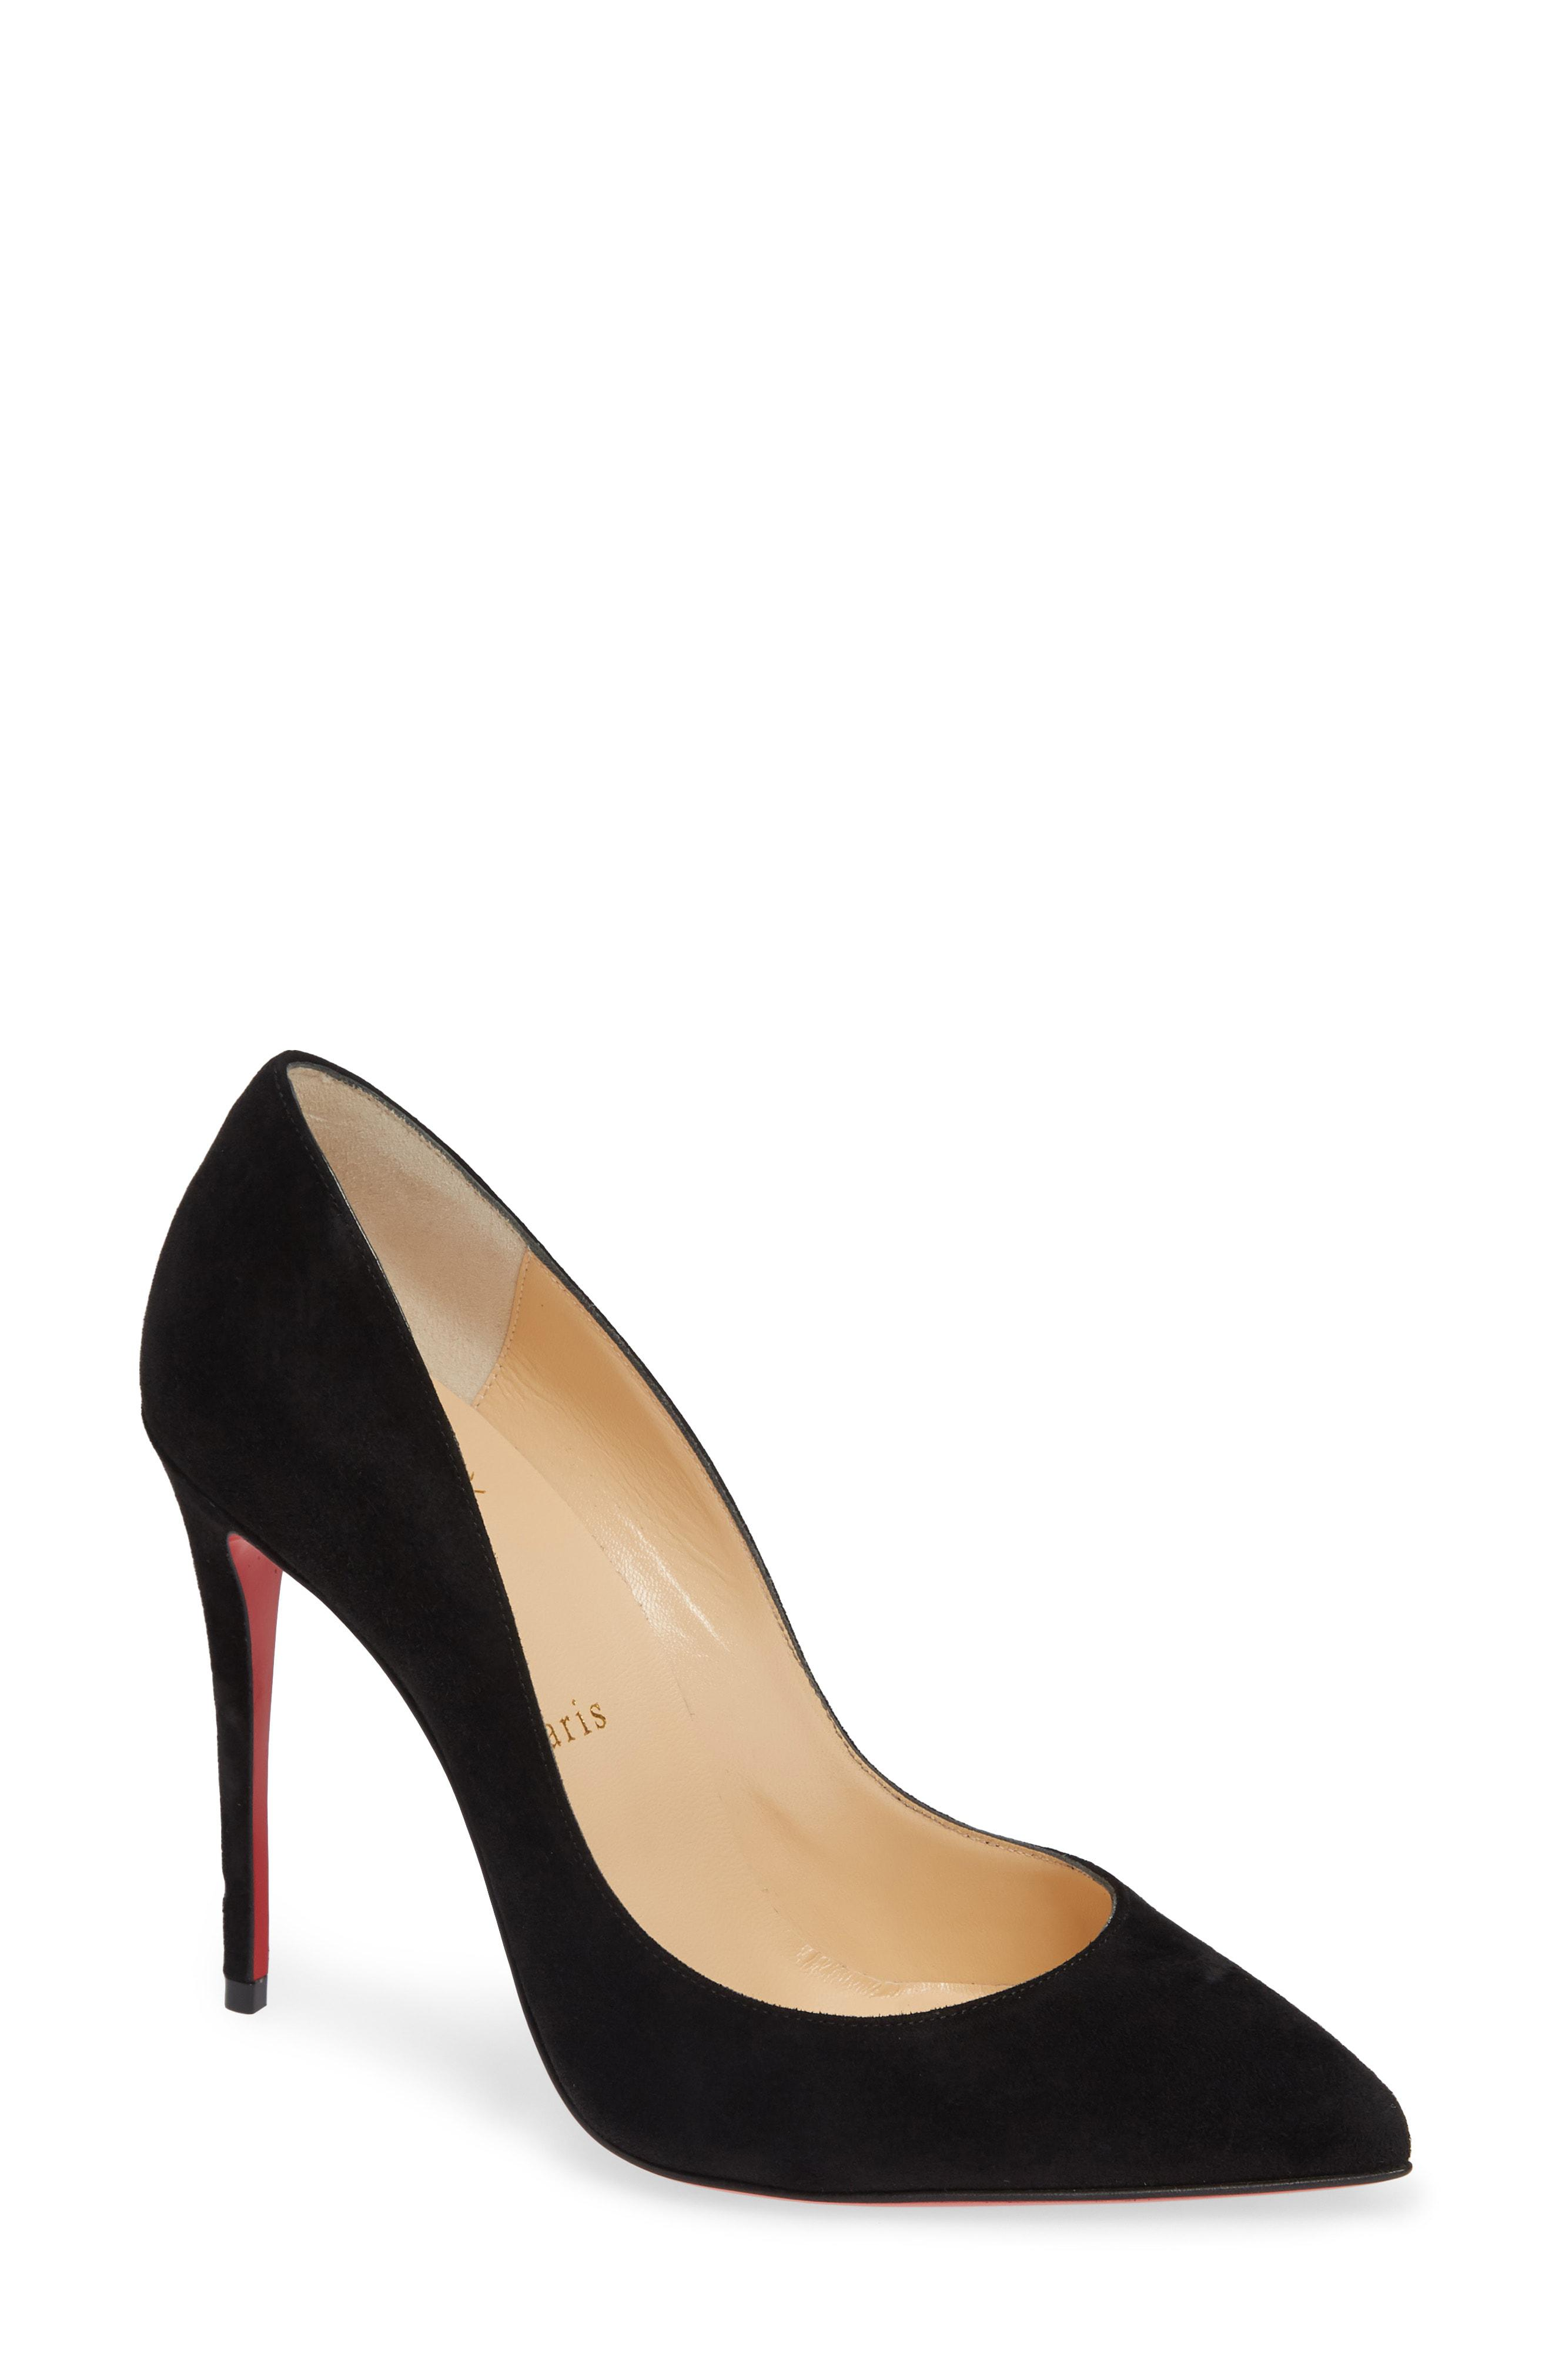 8323be9ab11 Christian Louboutin. Women s Black Pigalle Follies Pointy Toe Pump.  695  From Nordstrom. Free shipping ...